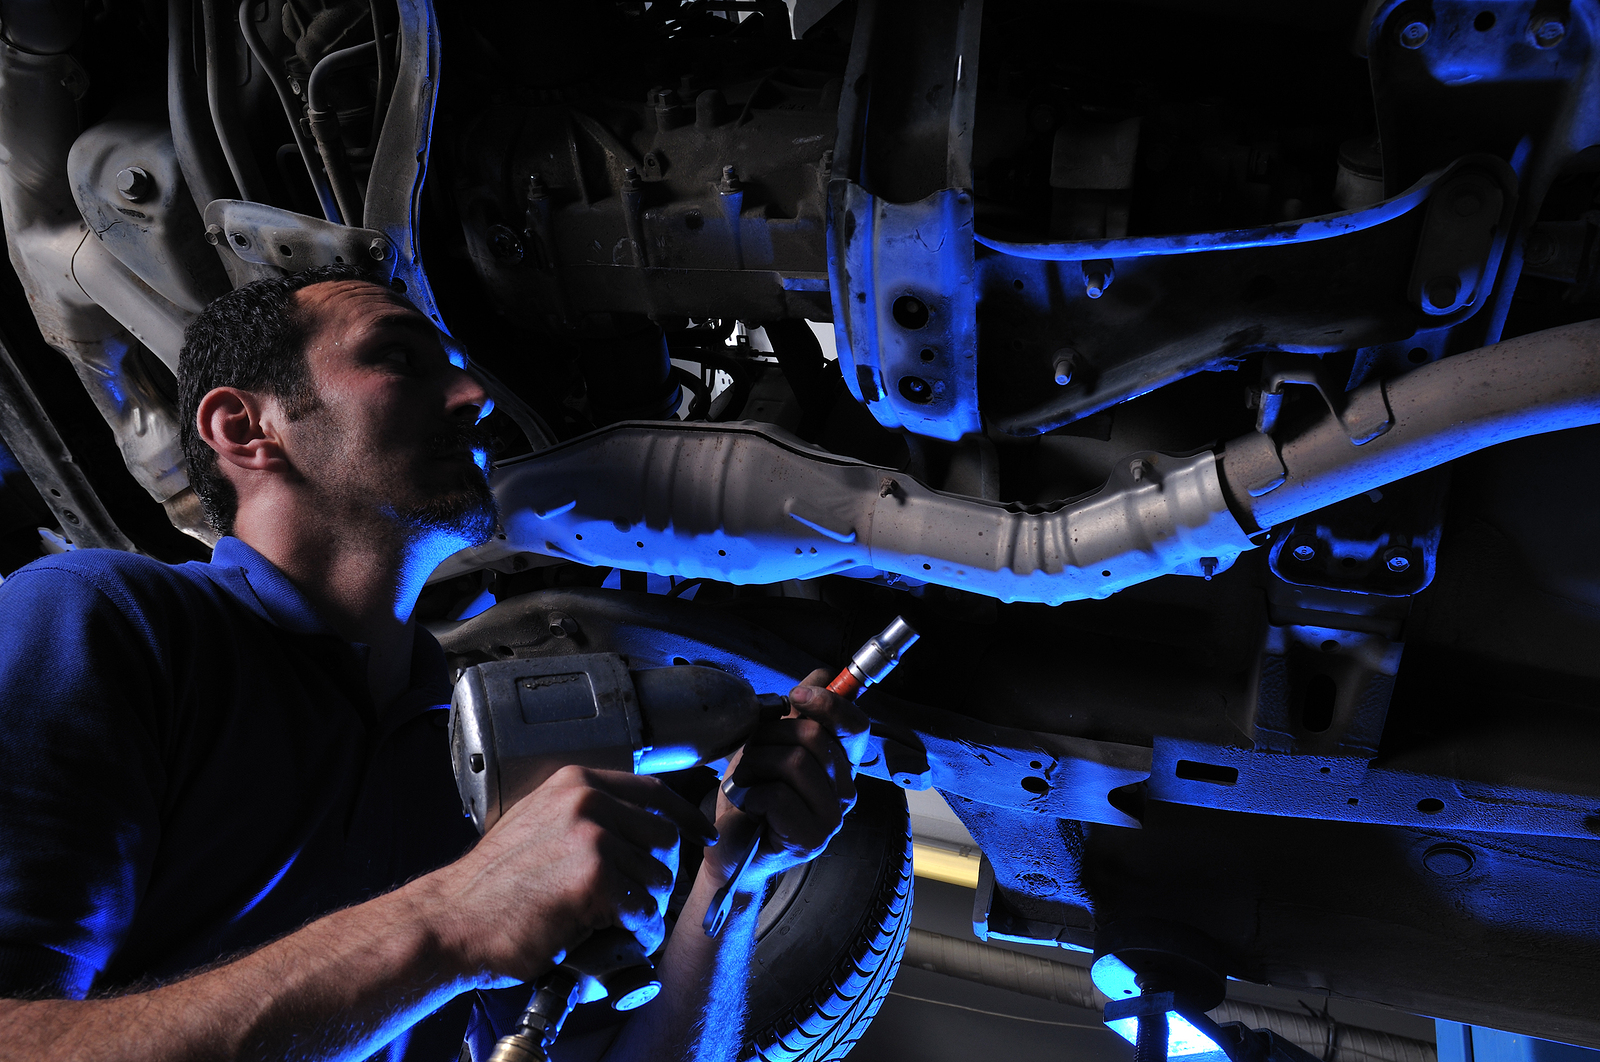 mechanic working on transmission of a vehicle